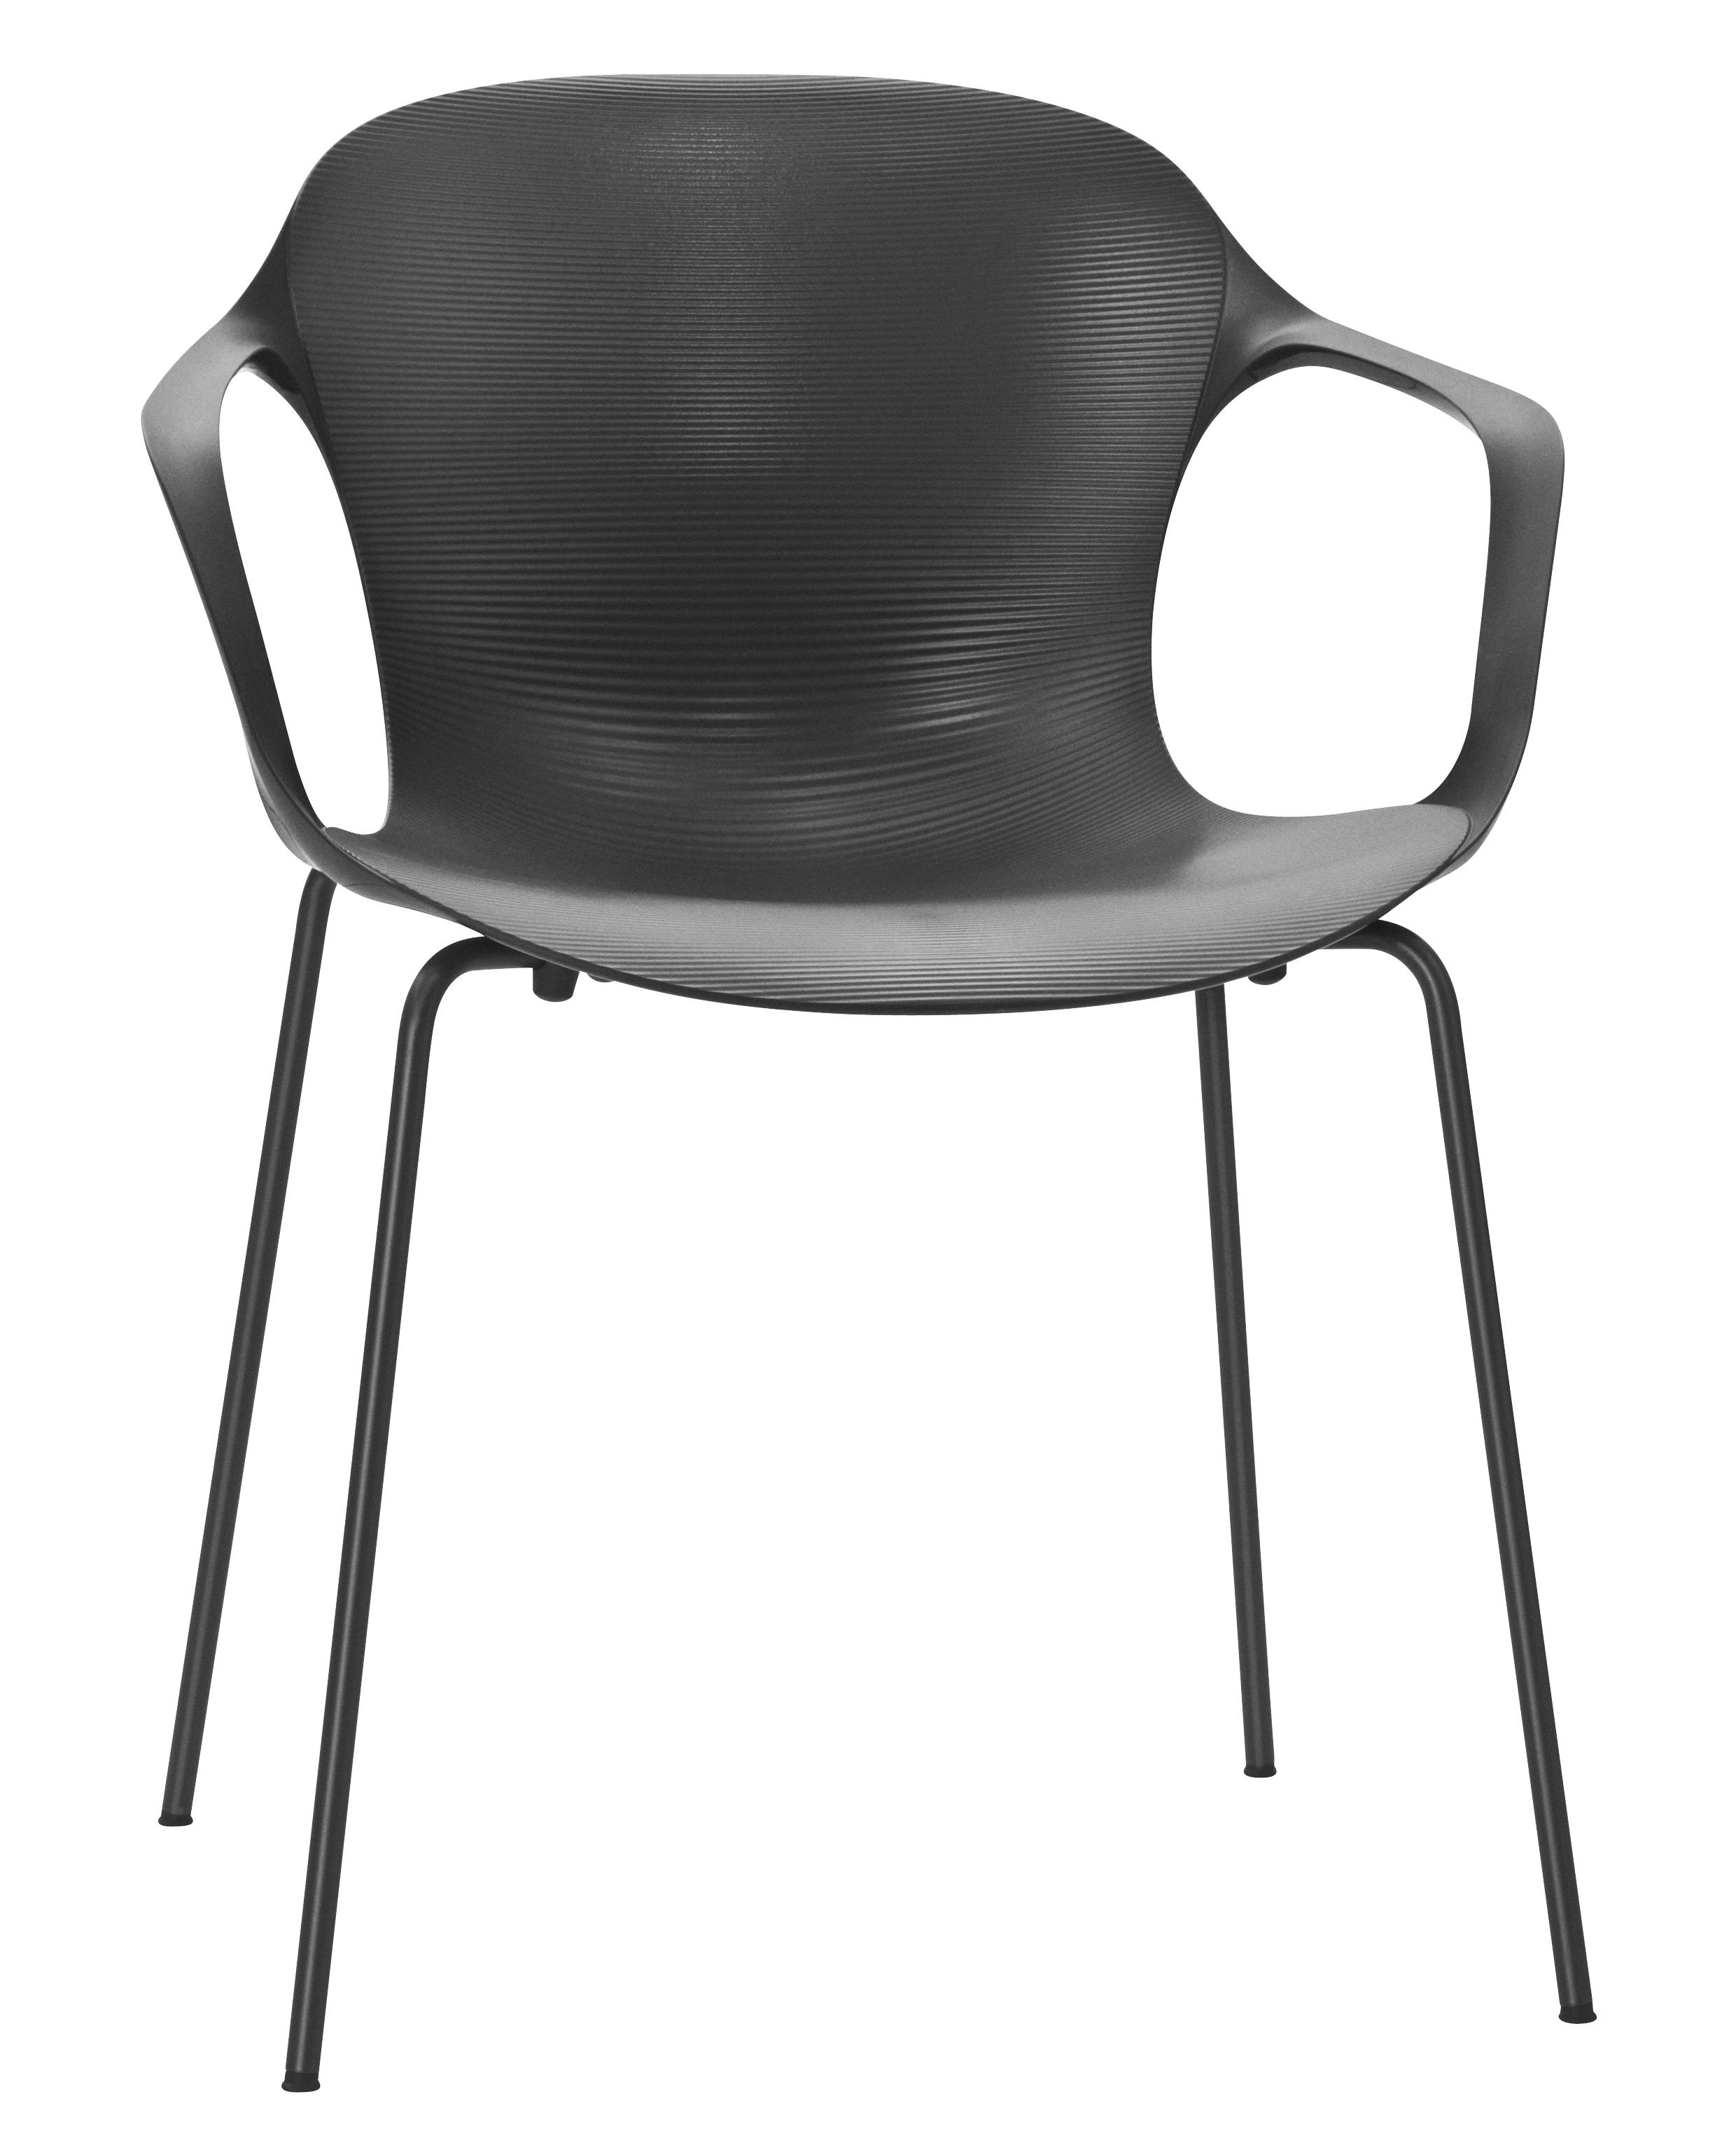 Furniture - Chairs - Nap Stackable armchair - Plastic shell & metal legs by Fritz Hansen - Grey - Lacquered steel, Polyamide